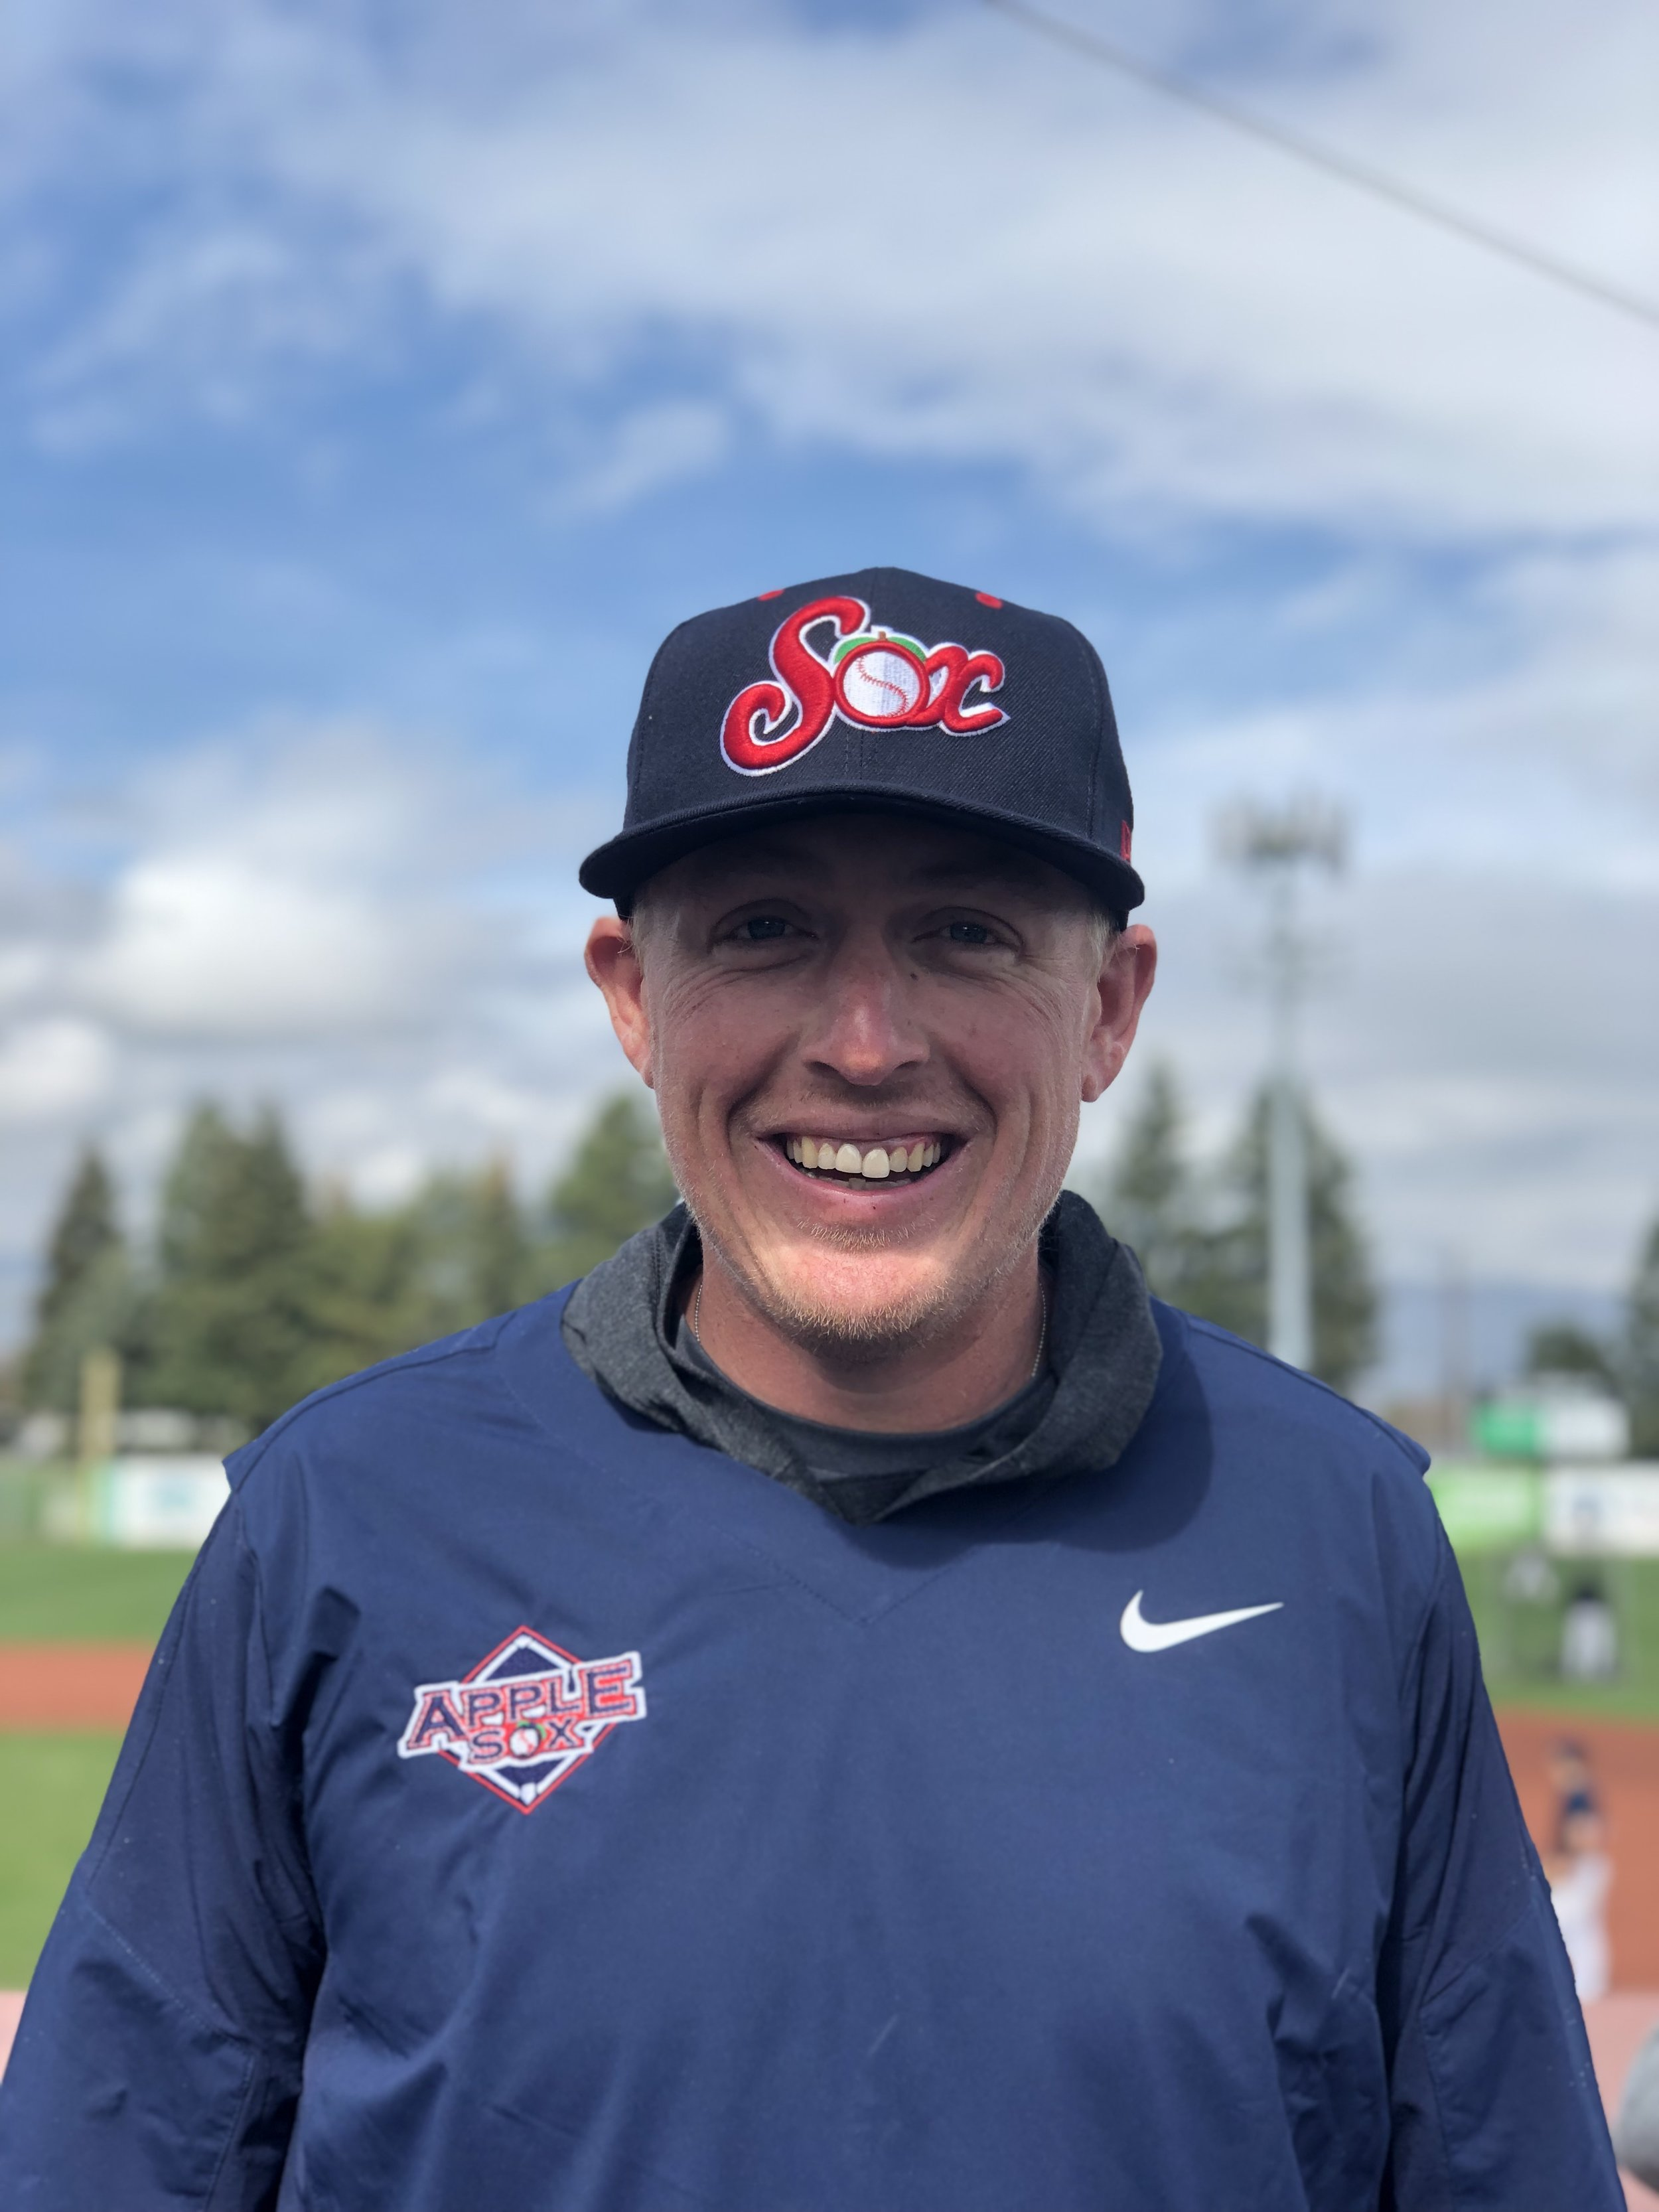 AppleSox head coach Kyle Krustangel